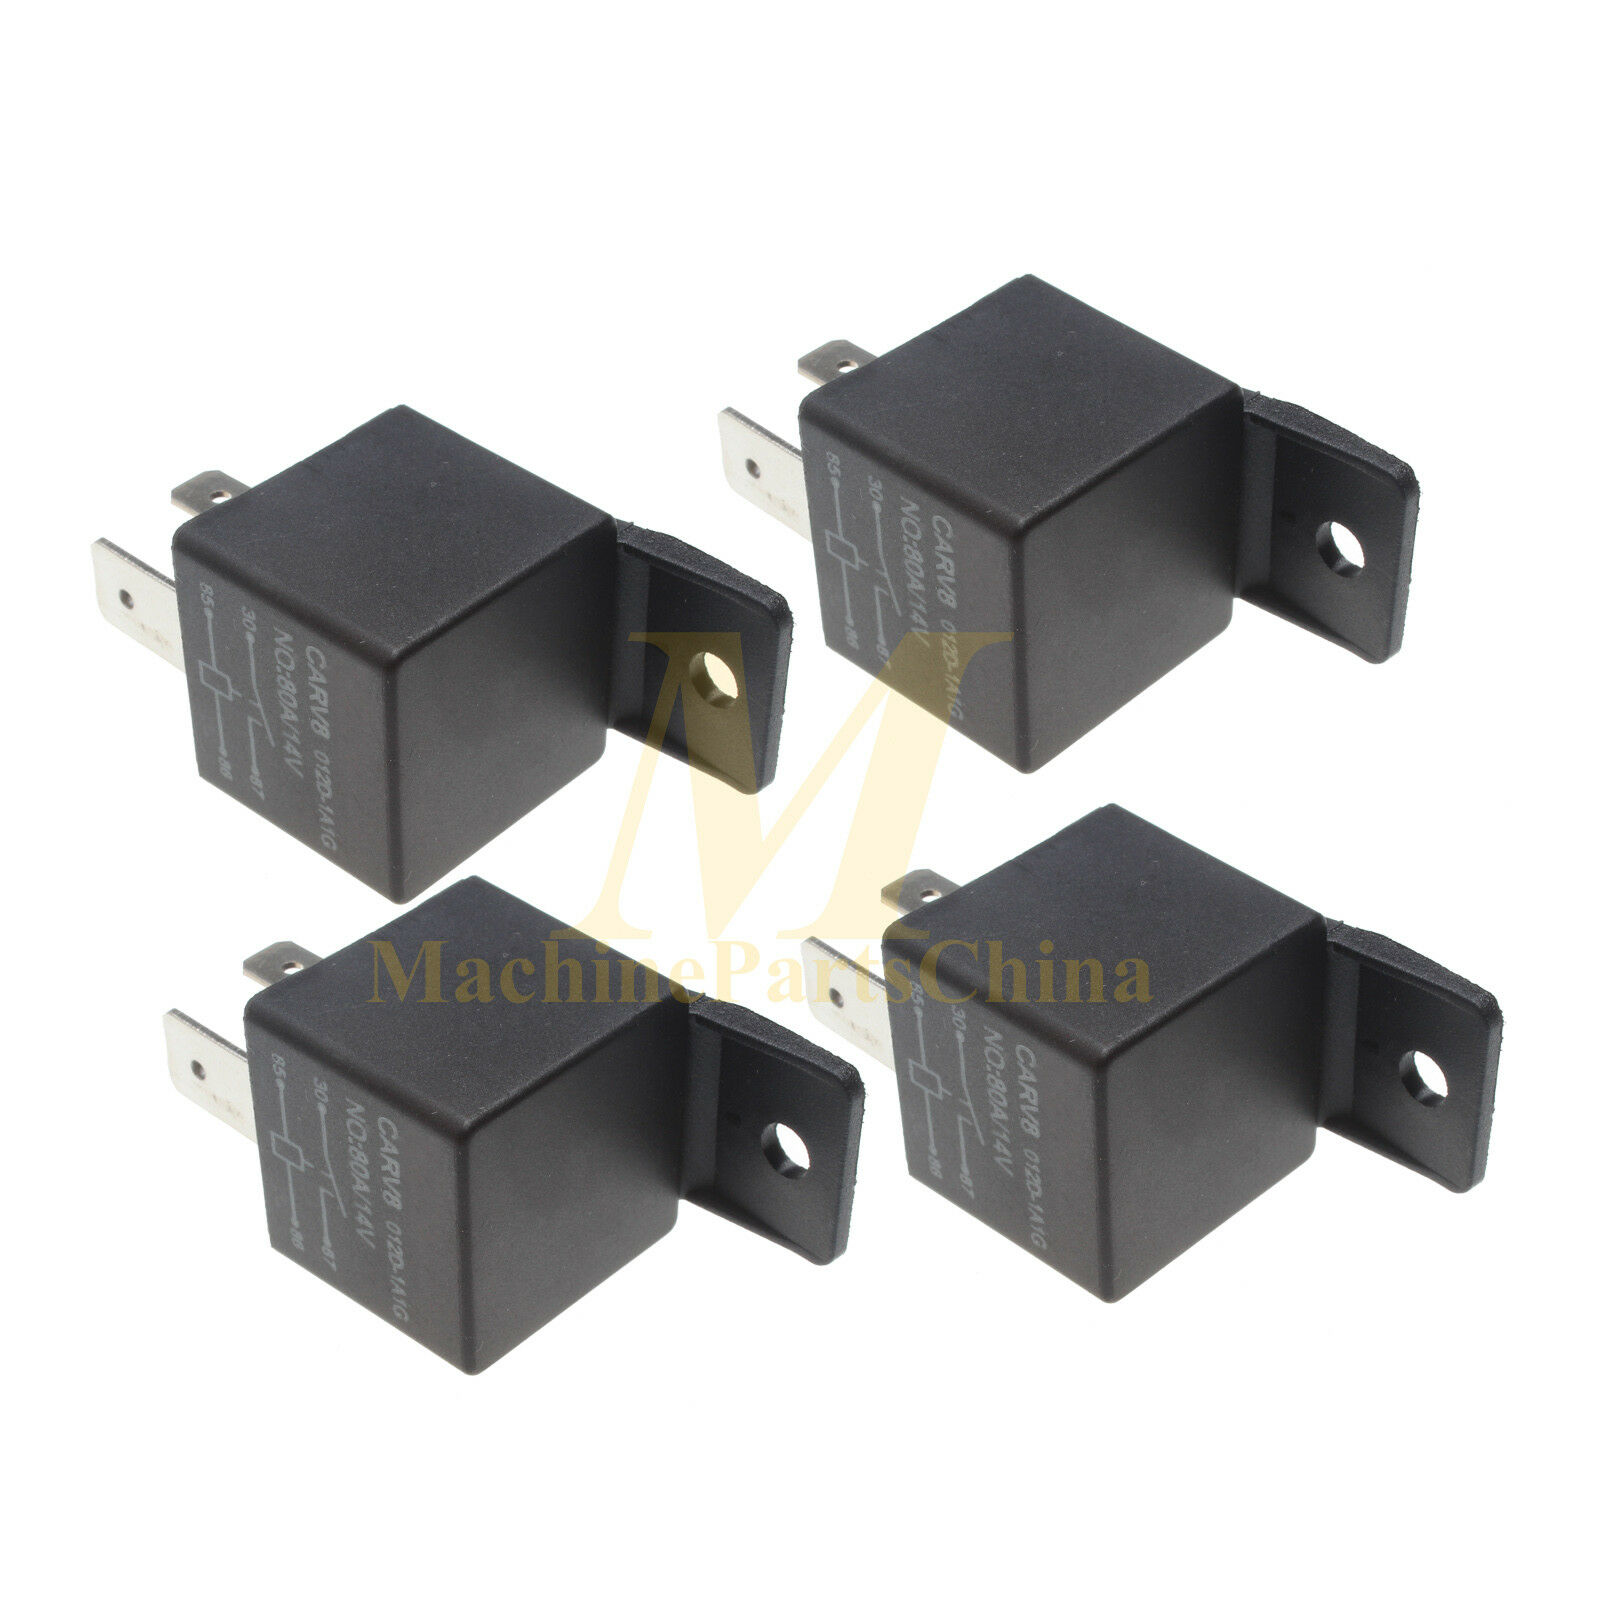 4 Pieces Fuel Shutoff Solenoid Relay for Dodge Cummins 5.9L PickUp Truck  80A 14V